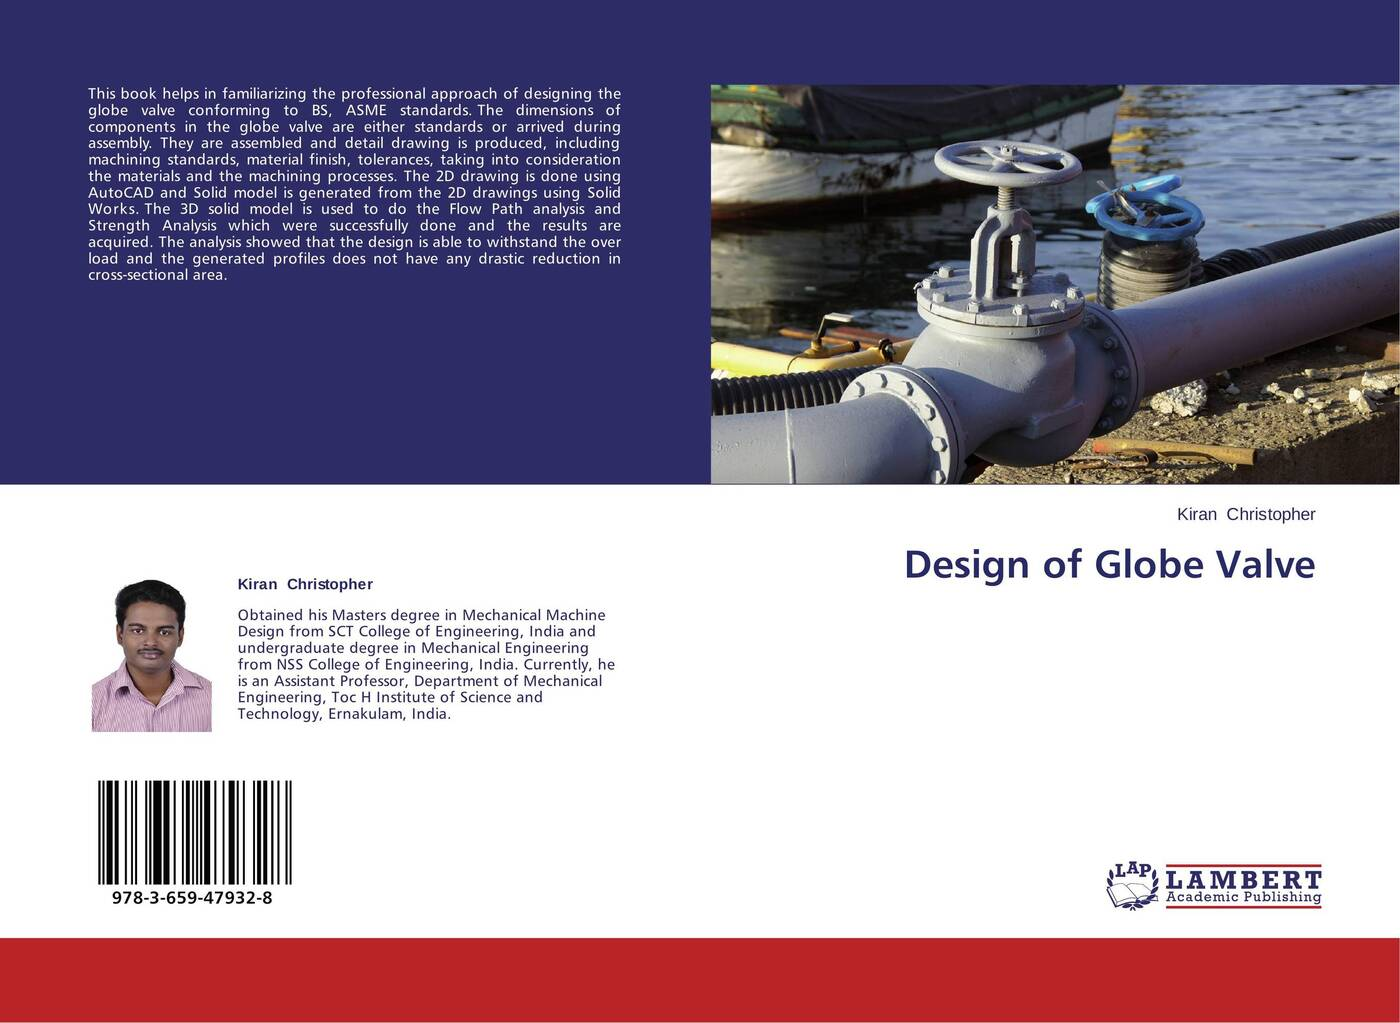 Kiran Christopher Design of Globe Valve alan johnson recommendations for design and analysis of earth structures using geosynthetic reinforcements ebgeo